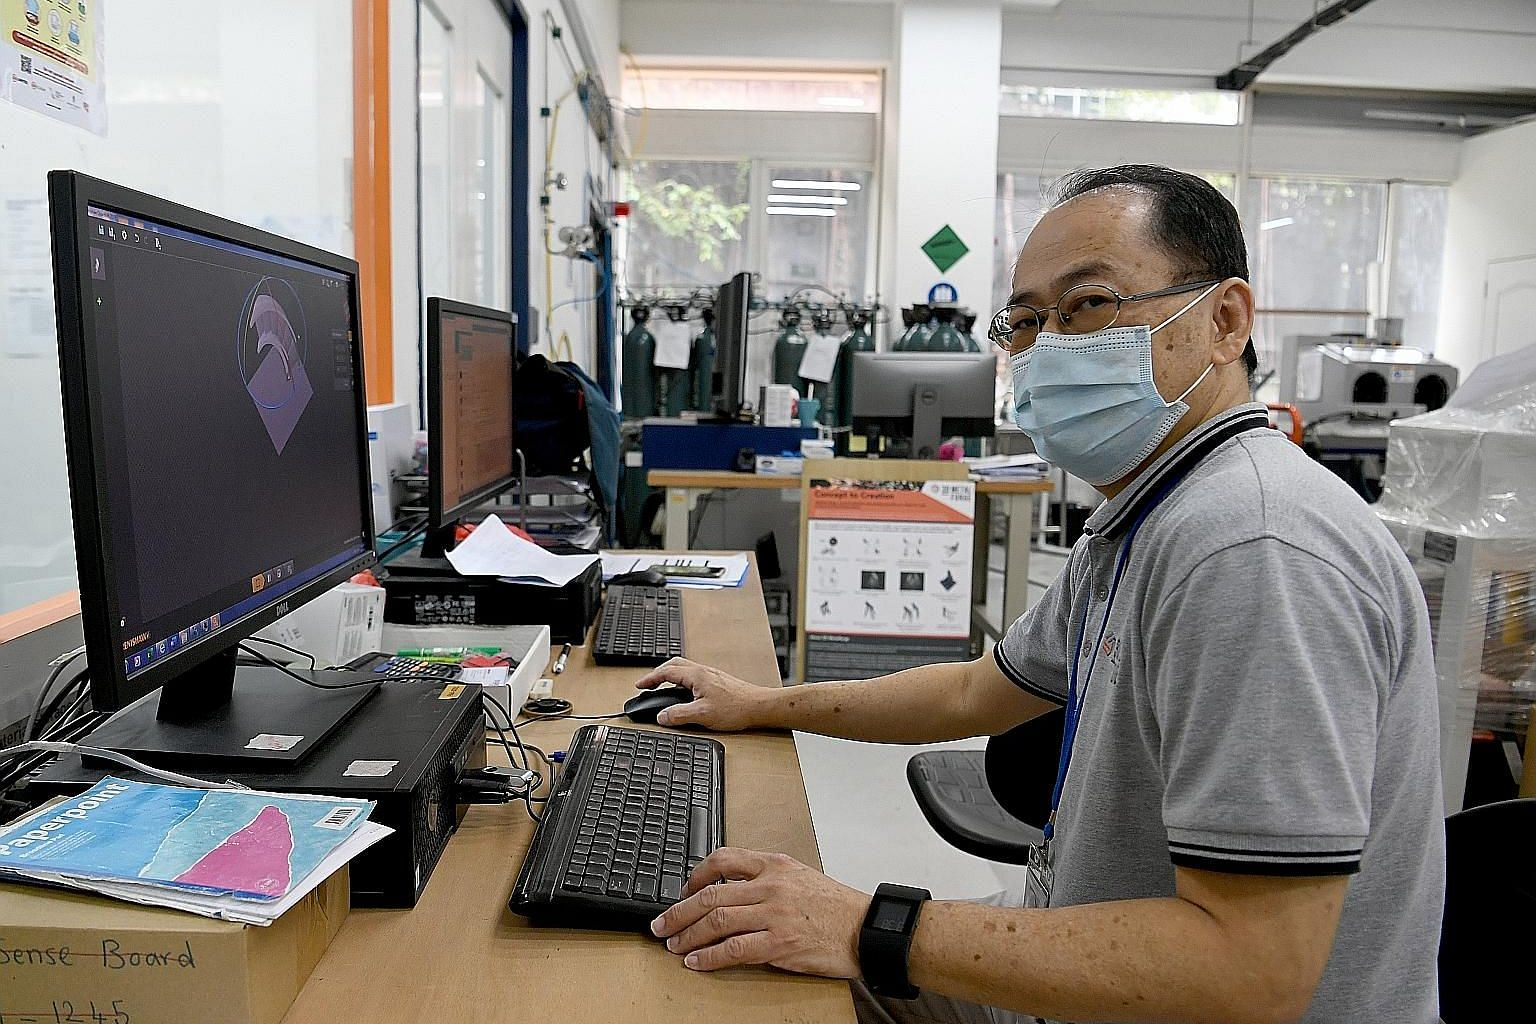 Mr Tim Tan found a job as an operations manager at 3D Metalforge, which specialises in 3D metal printing, in February. He was retrenched from an oil and gas firm just over a year ago, and sought help from Workforce Singapore's Careers Connect. This i